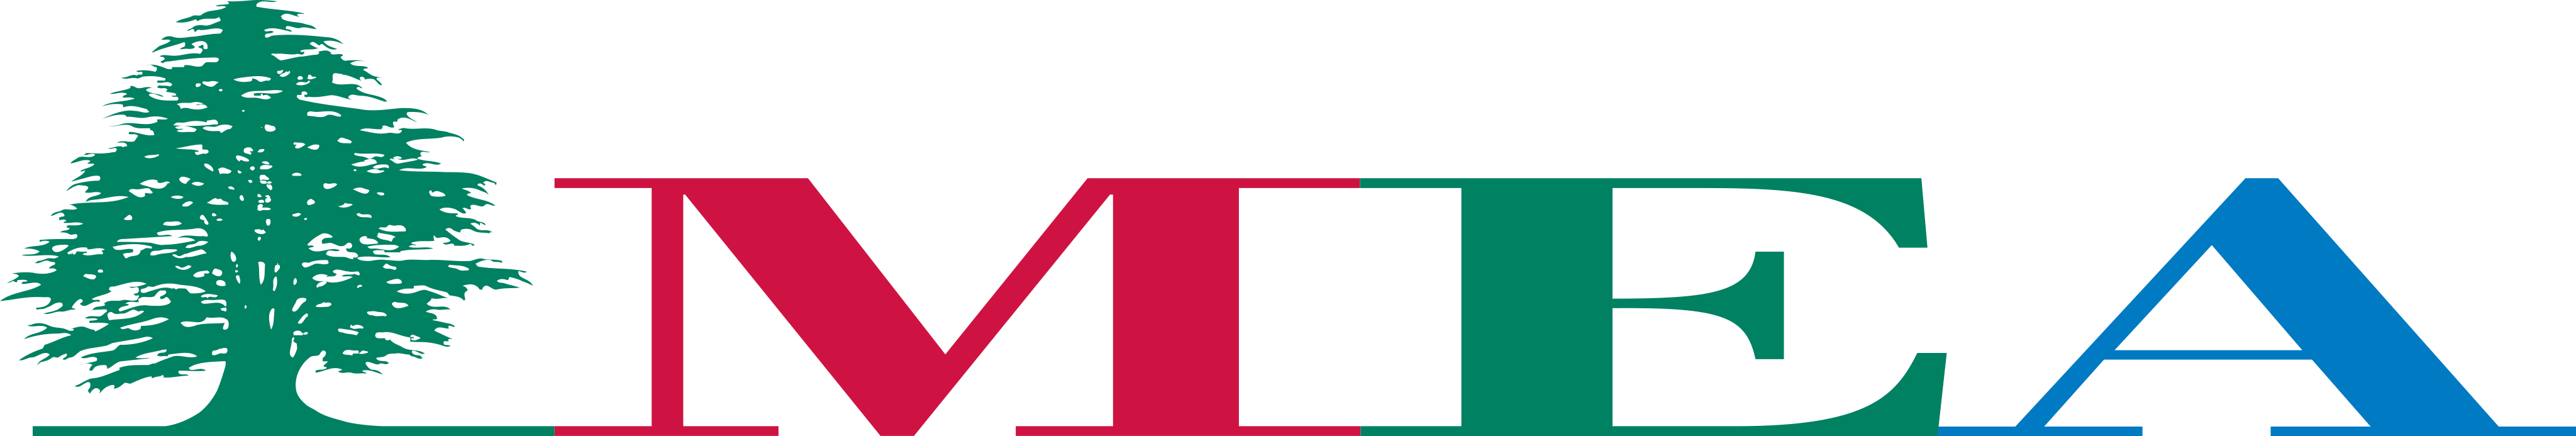 Middle East Airlines Logo.